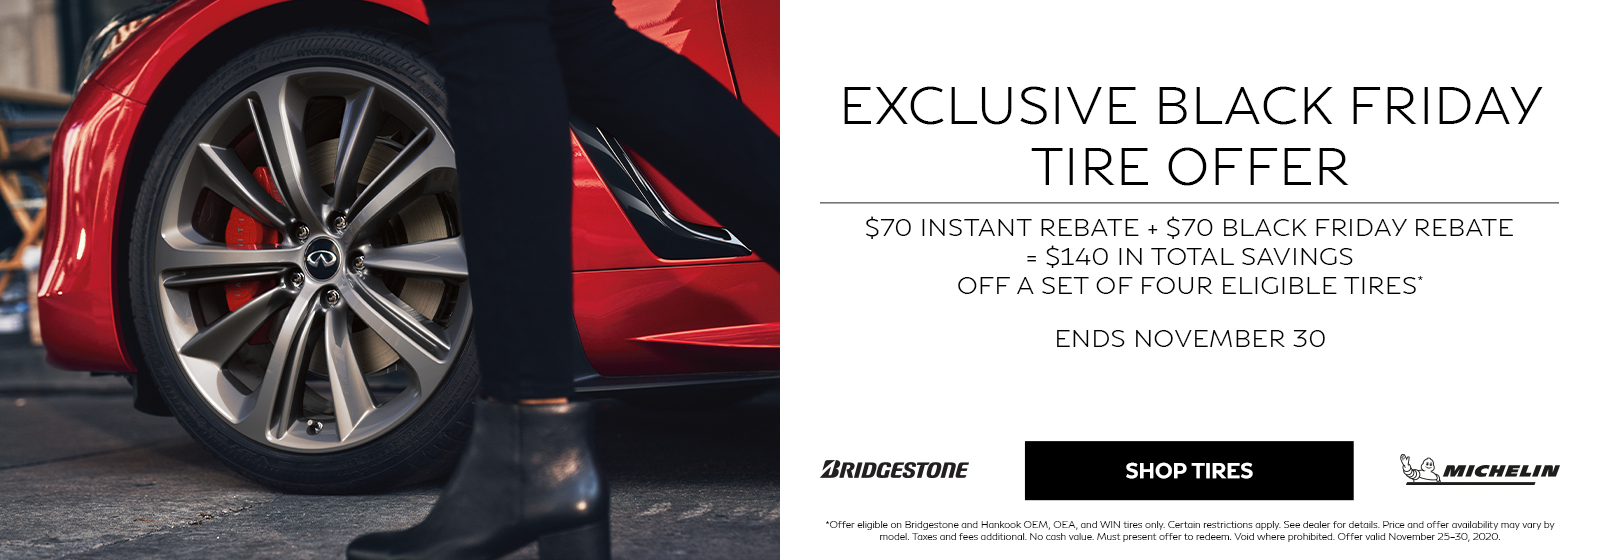 Exclusive Black Friday Tire Offer. $70 Instant Rebate + $70 Black Friday Rebate = $140 in Total Savings Off a Set of Four Eligible Tires. Ends November 30, 2020.